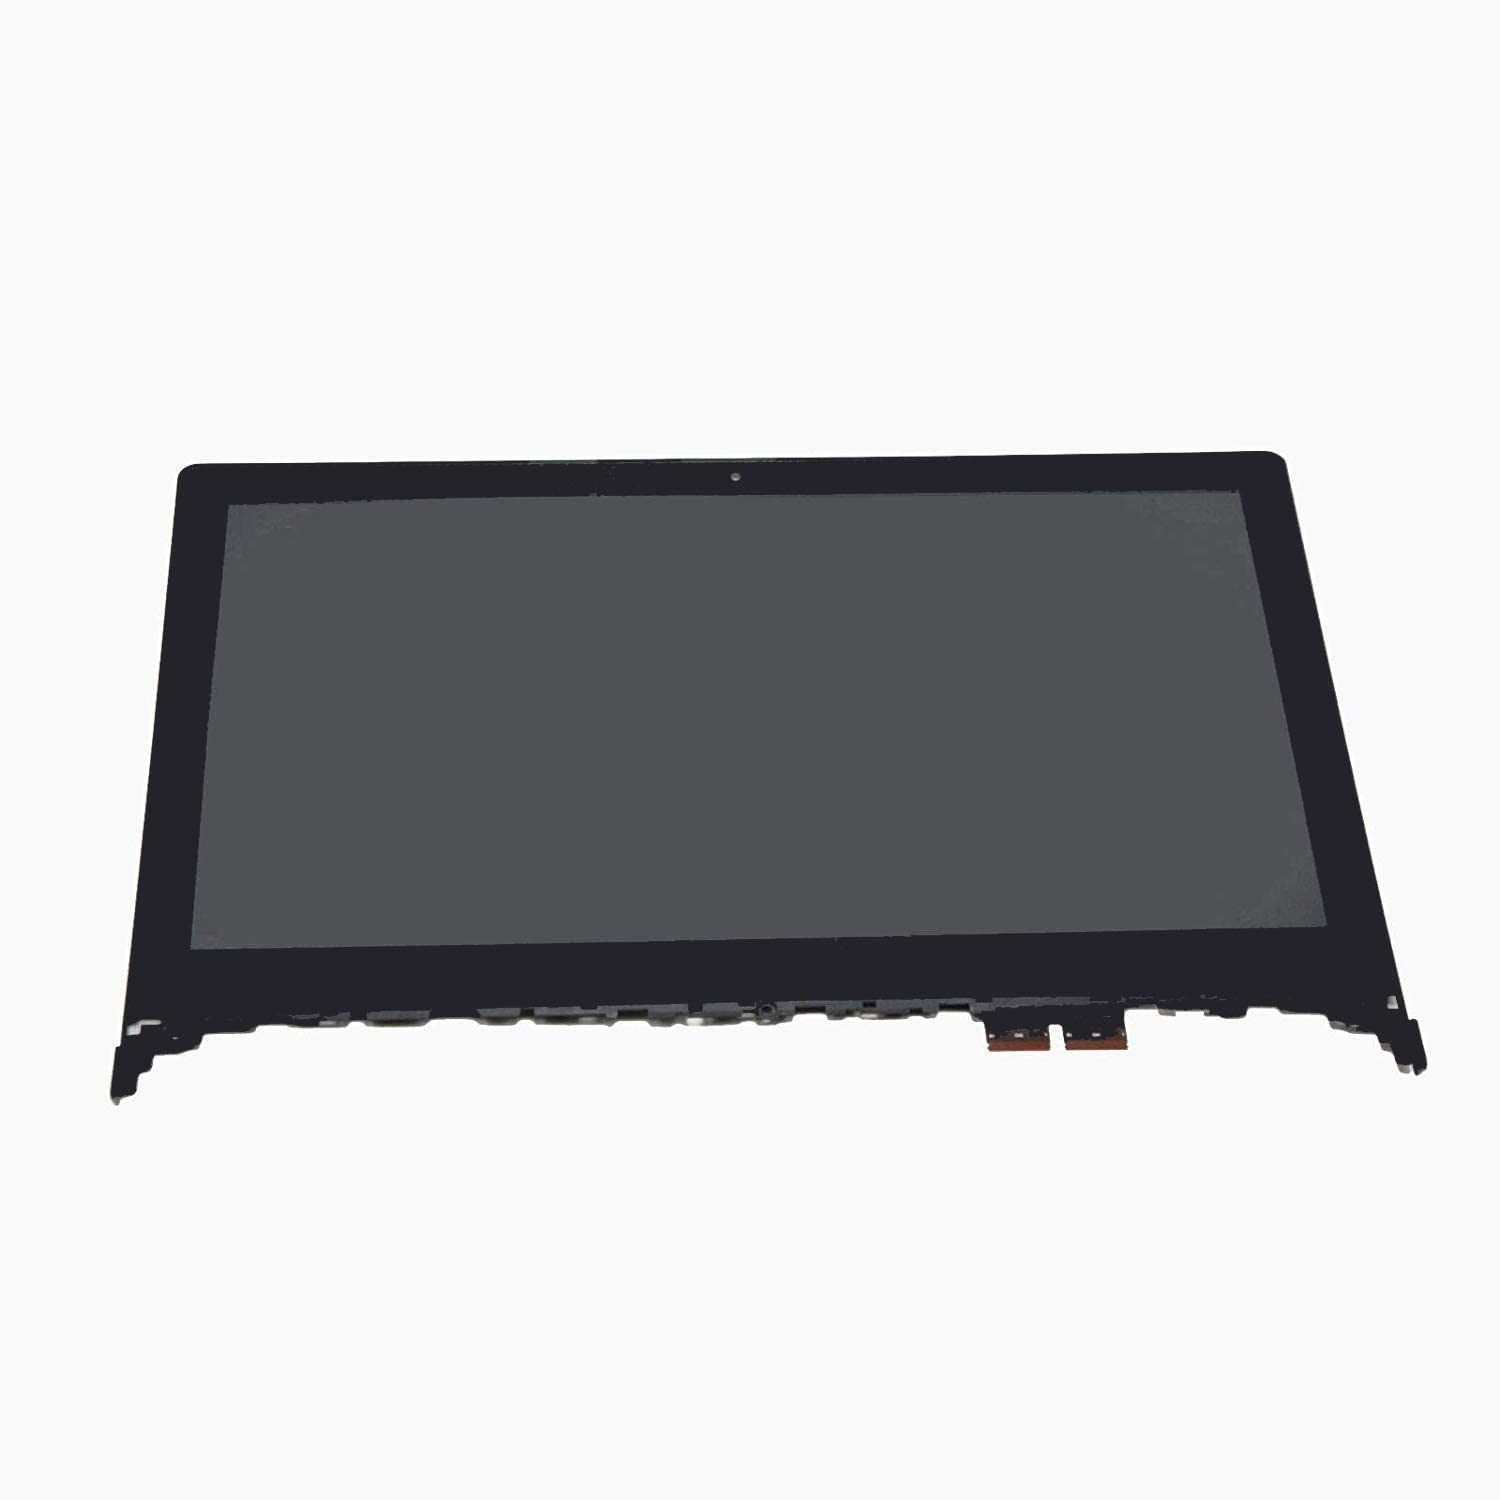 """Bblon 15.6"""" LED LCD Assembly Touch Screen Display for Lenovo Flex 2 15 20405 1080P"""